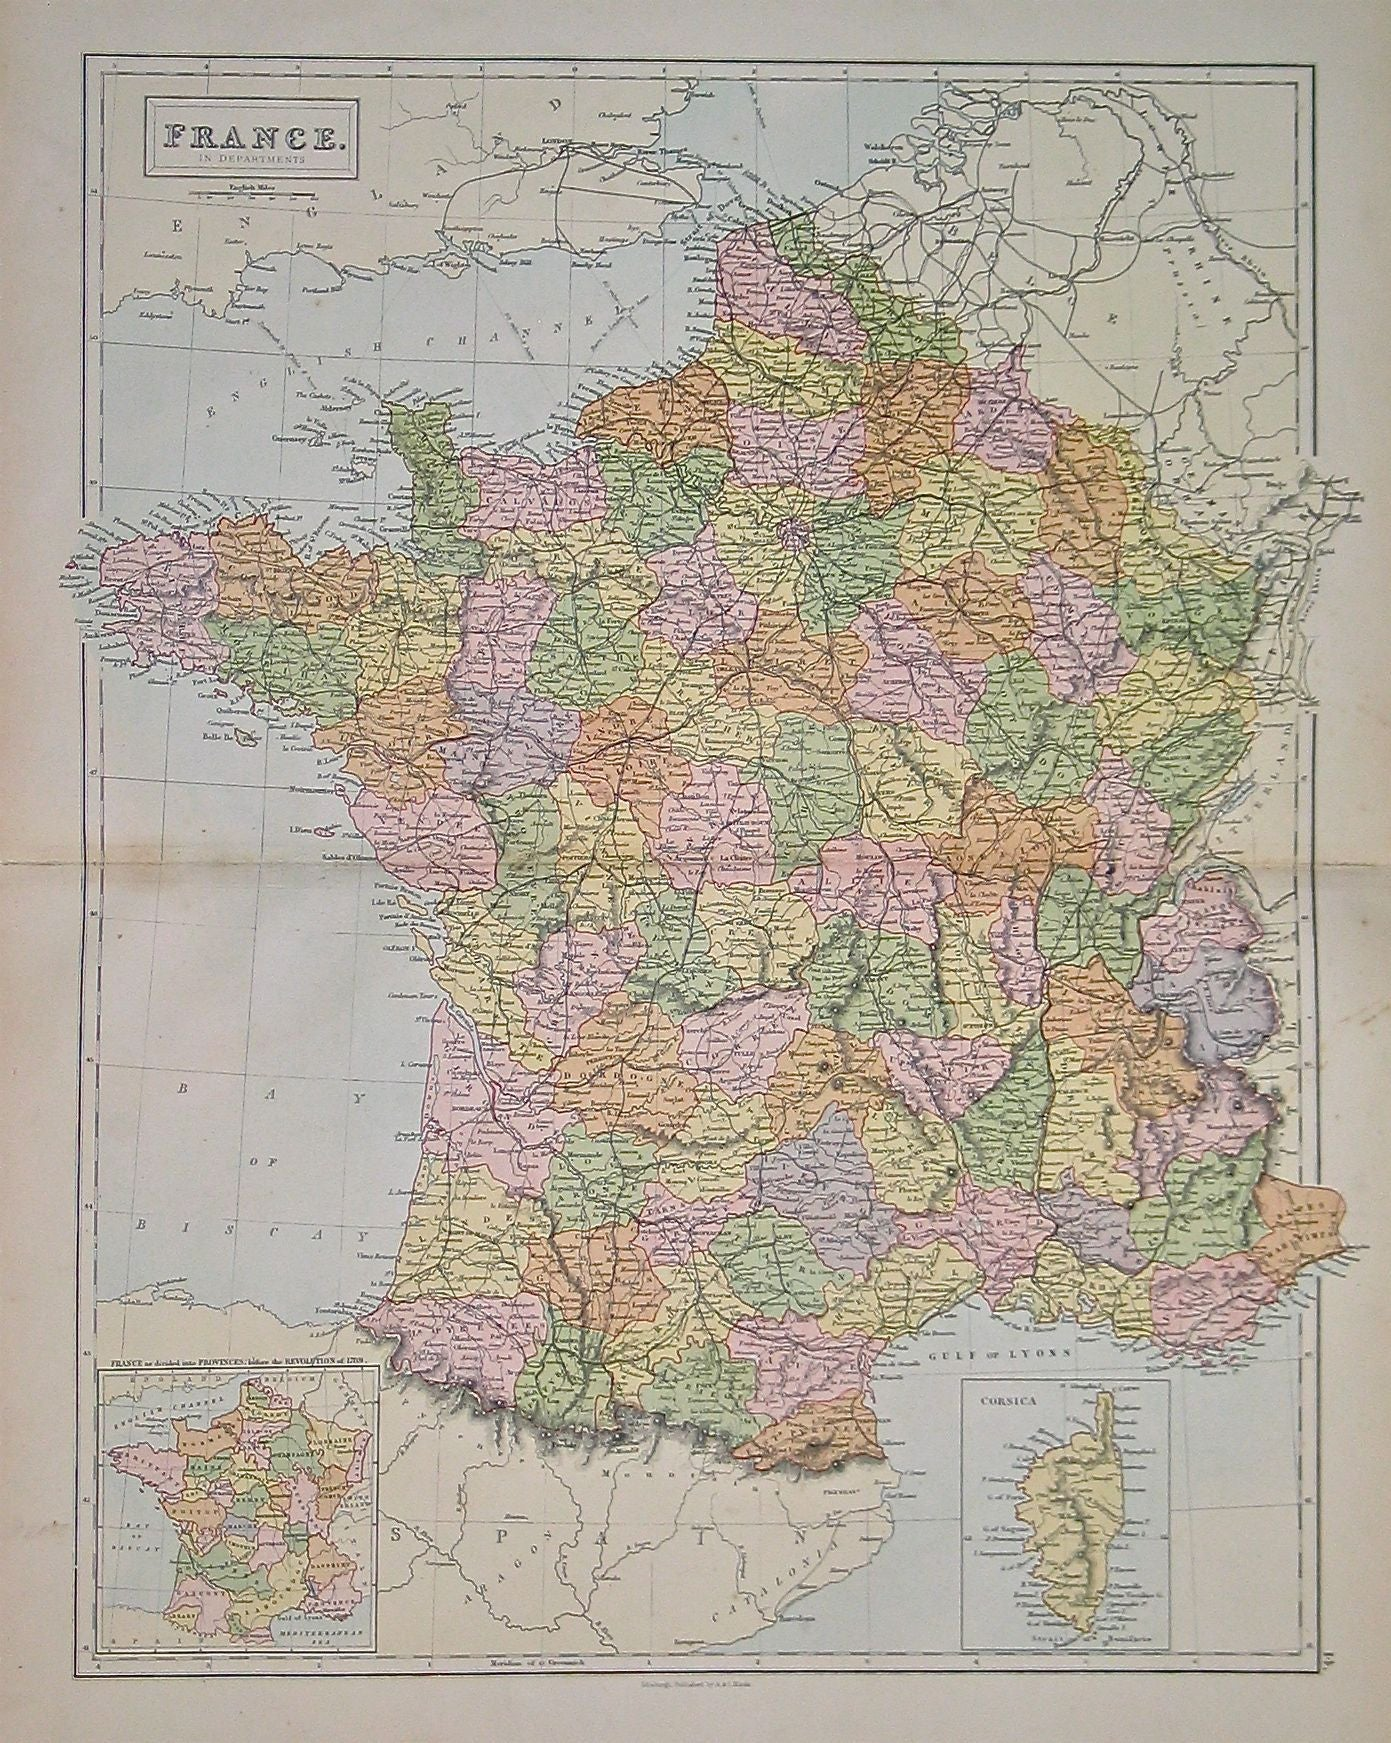 France in Departments